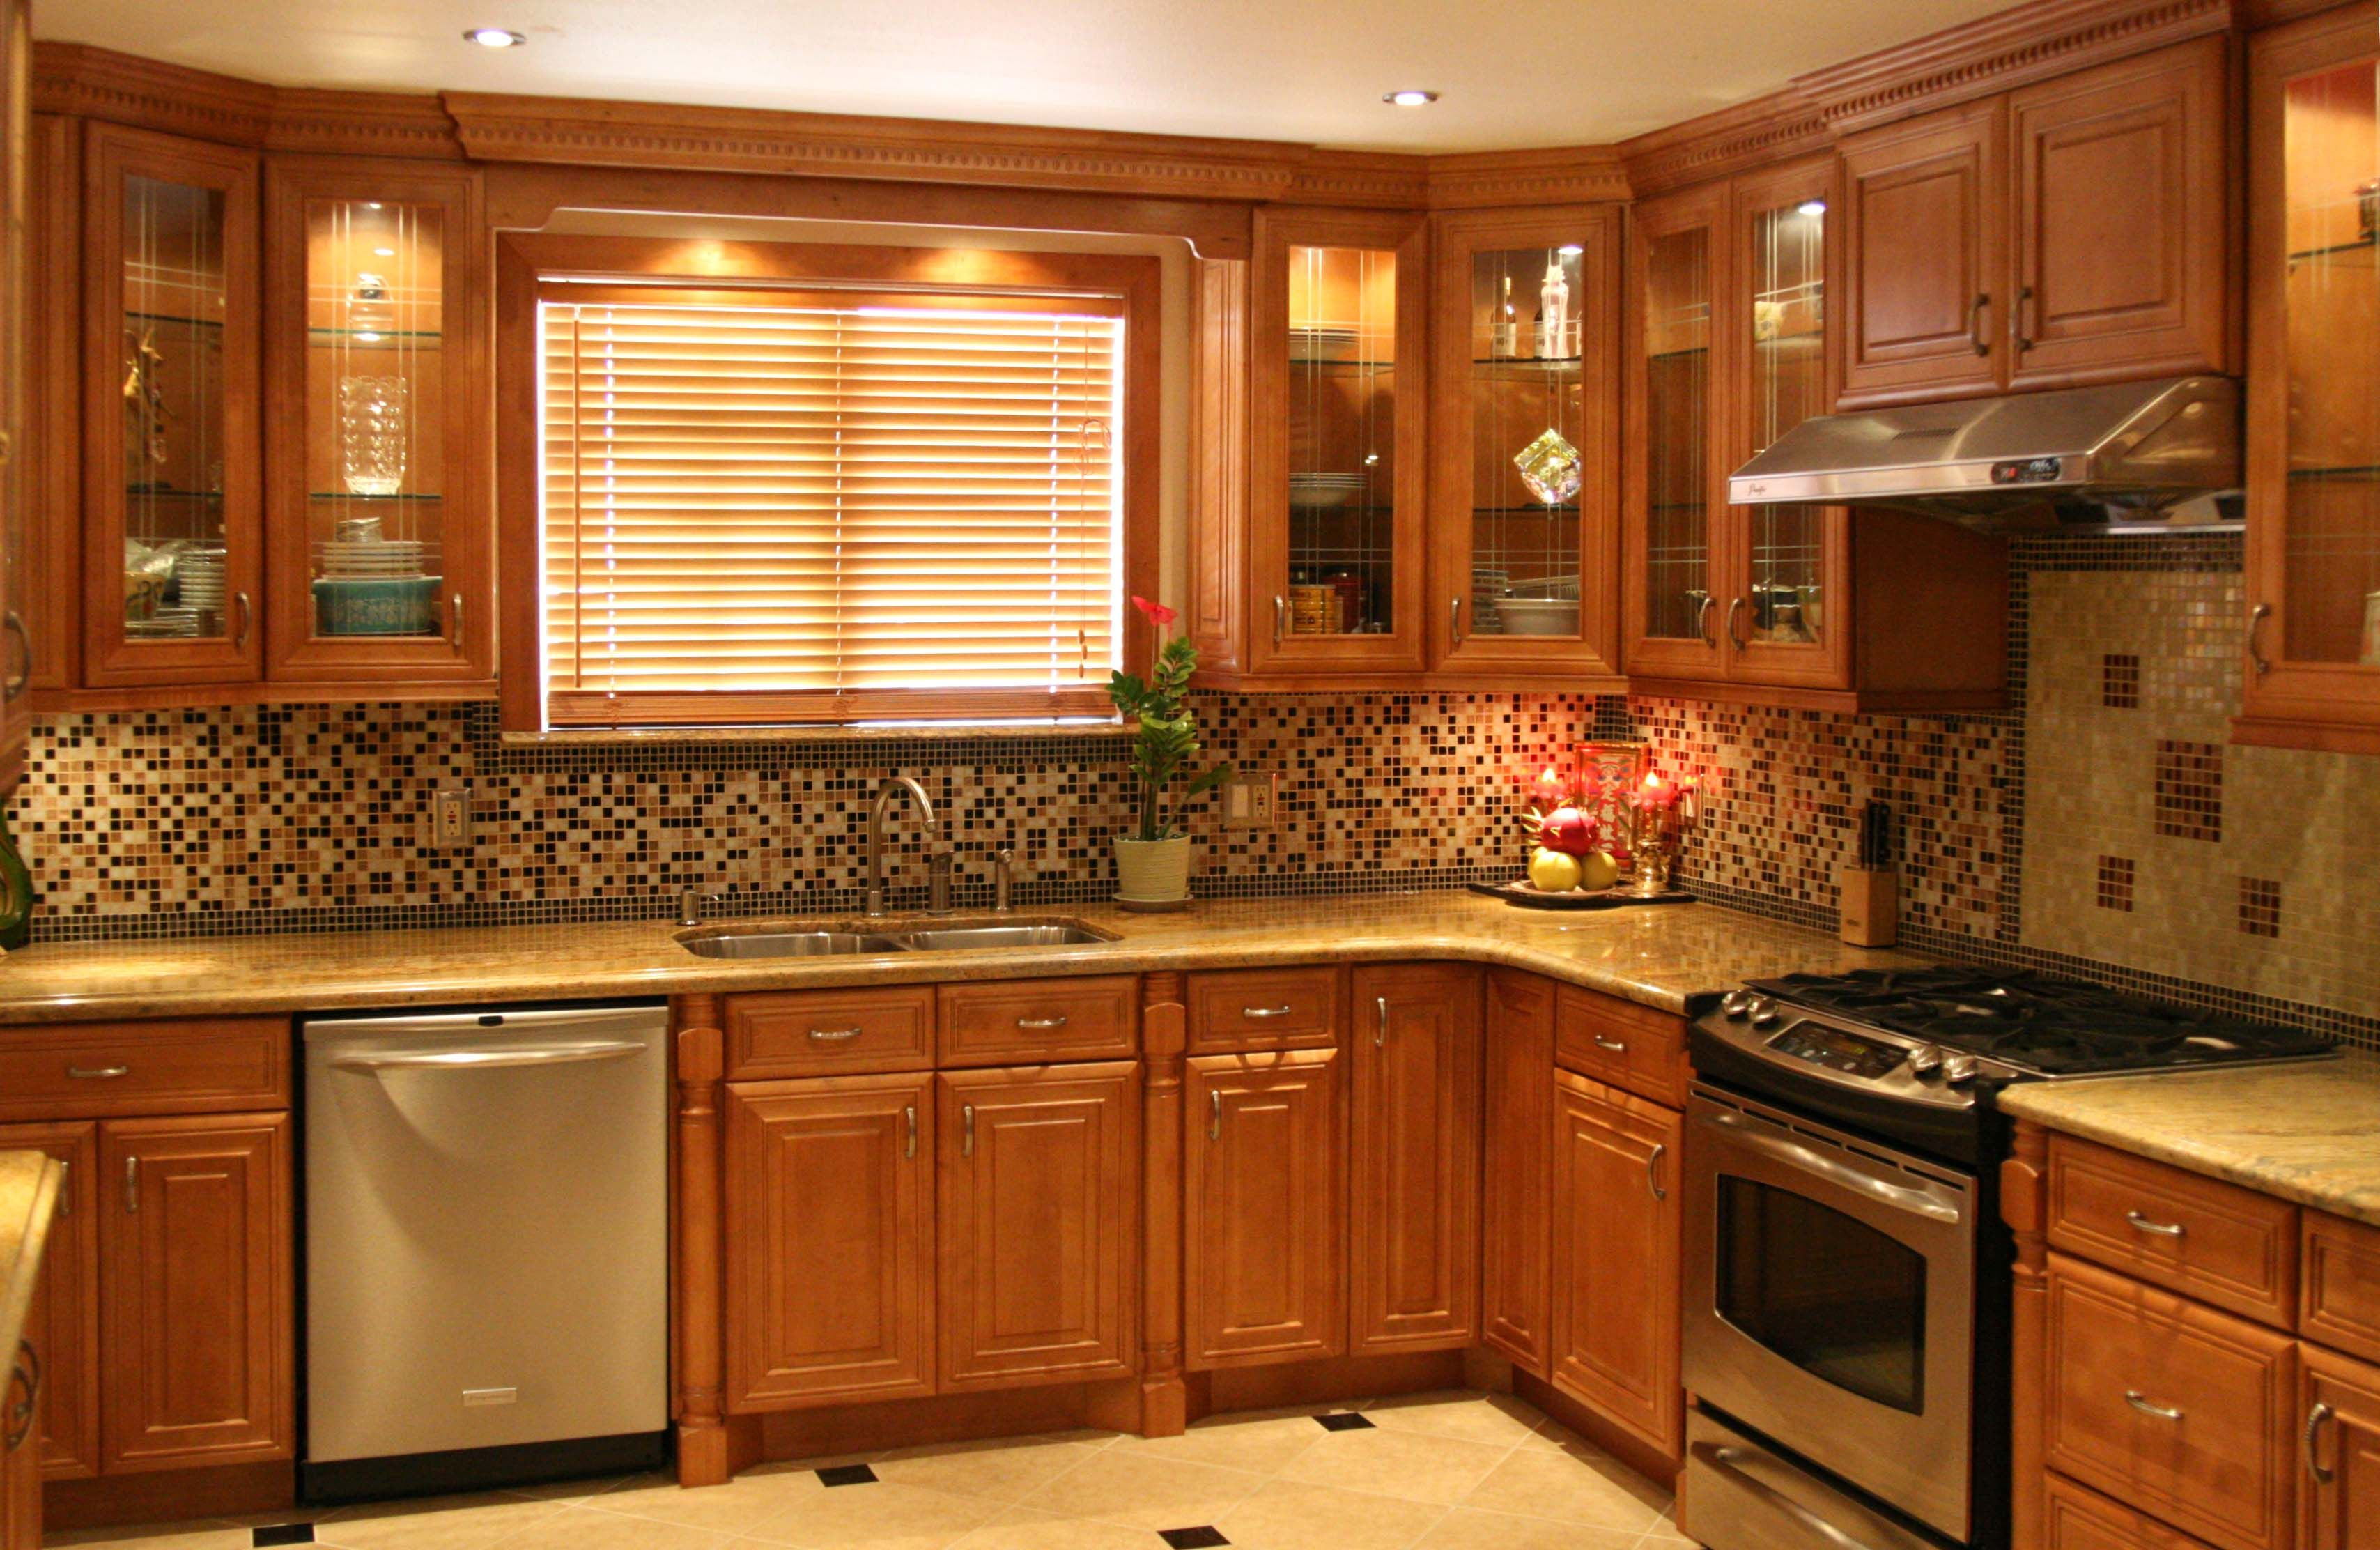 1000 images about remodeling kitchen oak cabinets on pinterest oak kitchen cabinets oak cabinets and oak kitchens